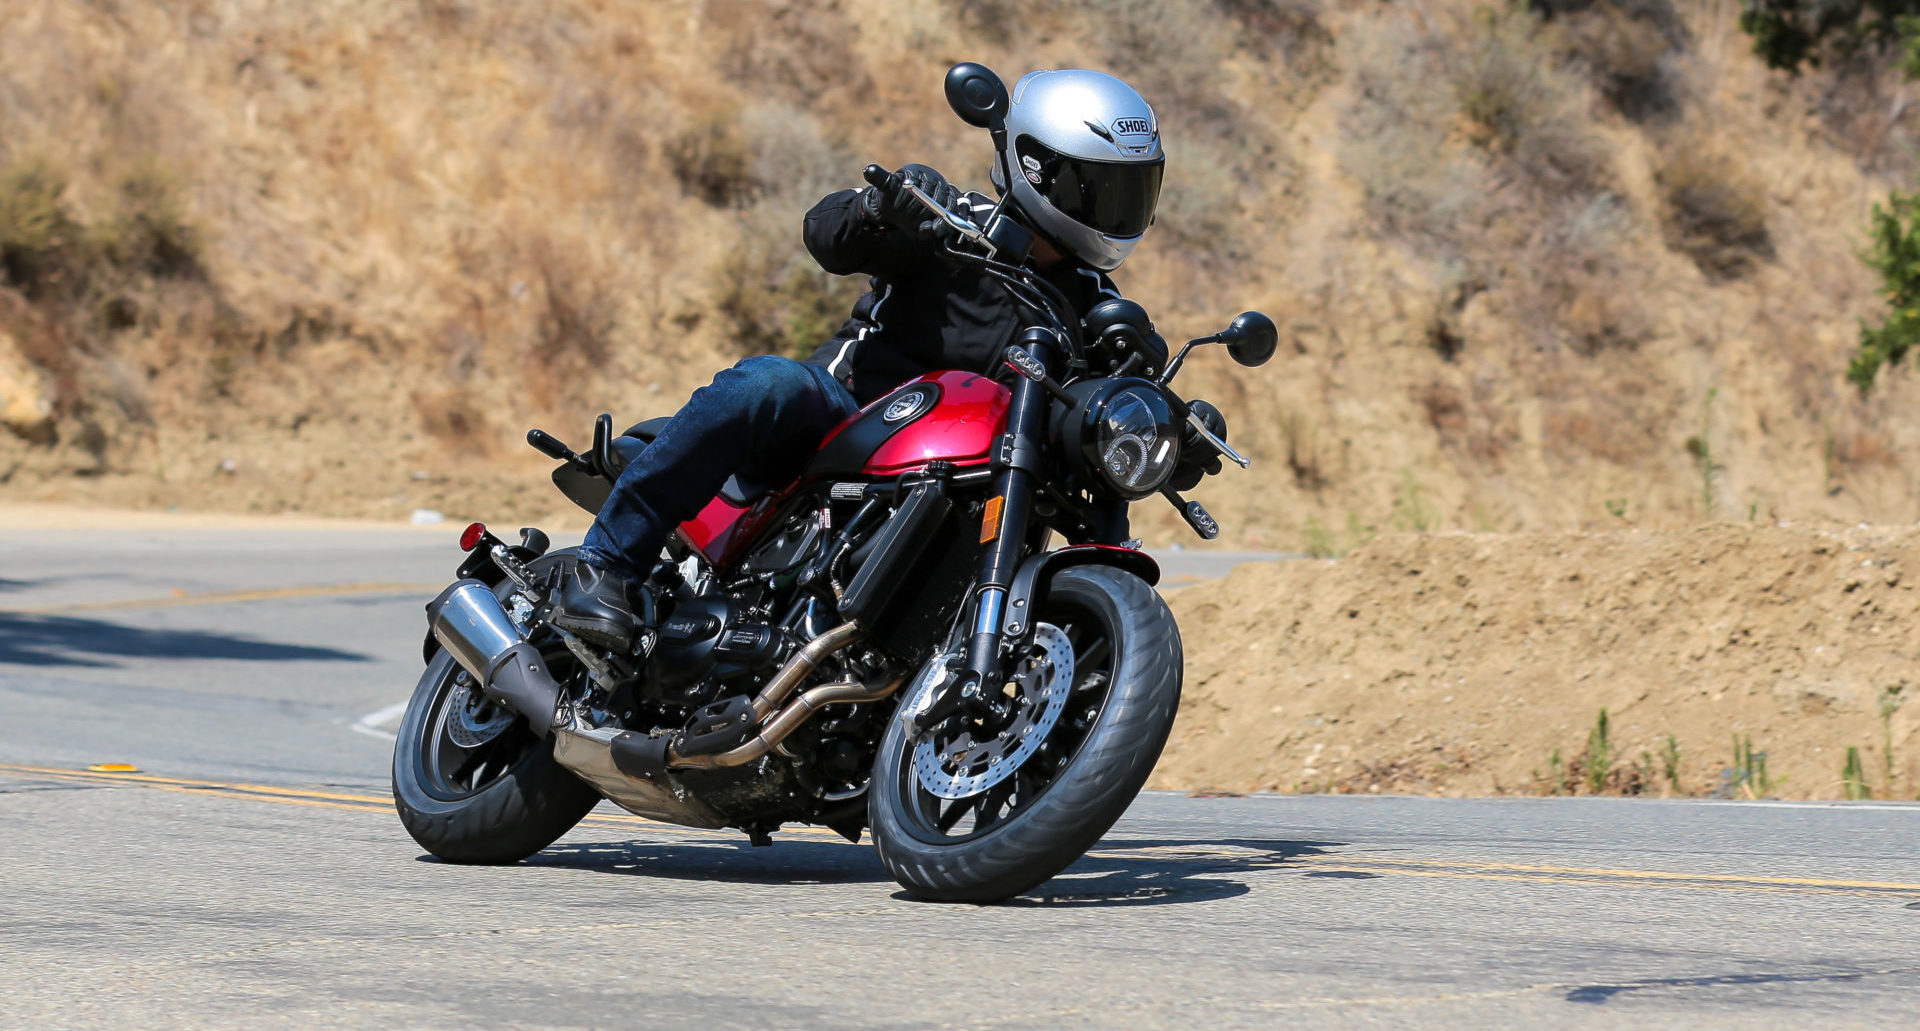 A Benelli Leoncino at speed. Photo courtesy Benelli Motorcycles USA/SSR Motorsports.